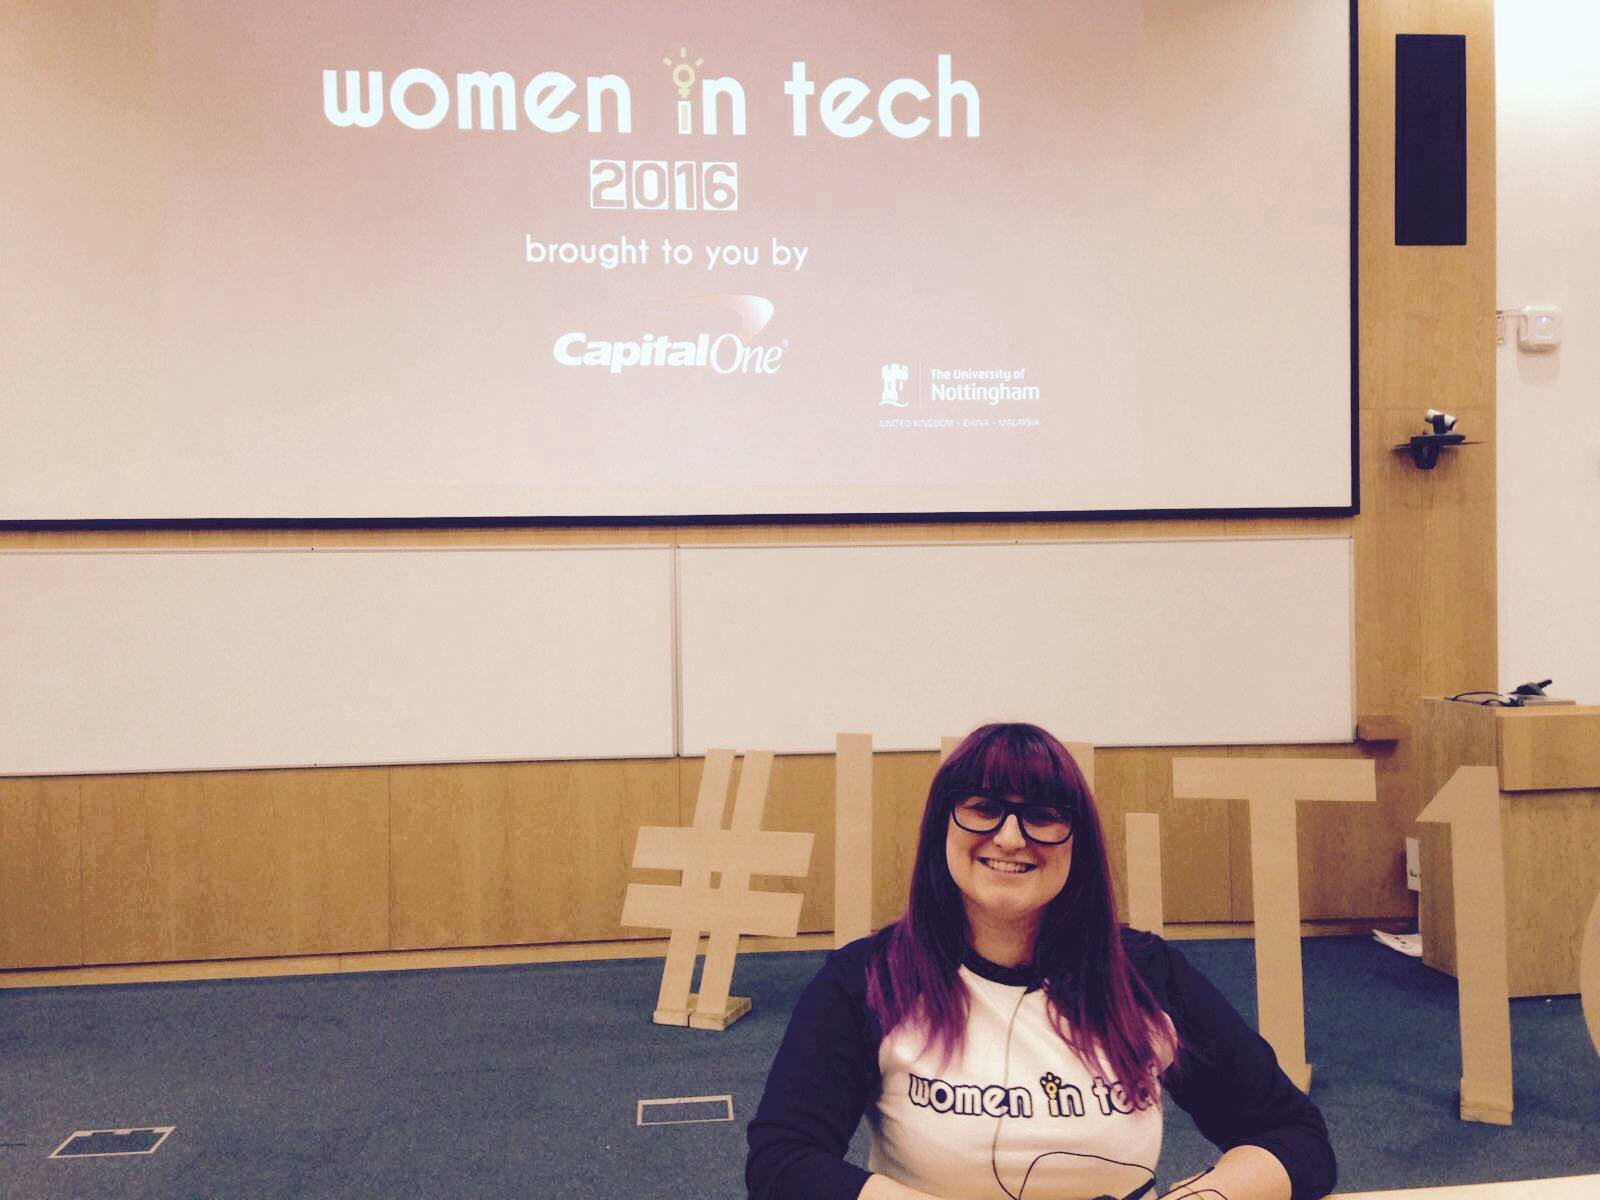 Here I am, standing at the front of the lecture space where we had the InspireWiT 2016 talks.